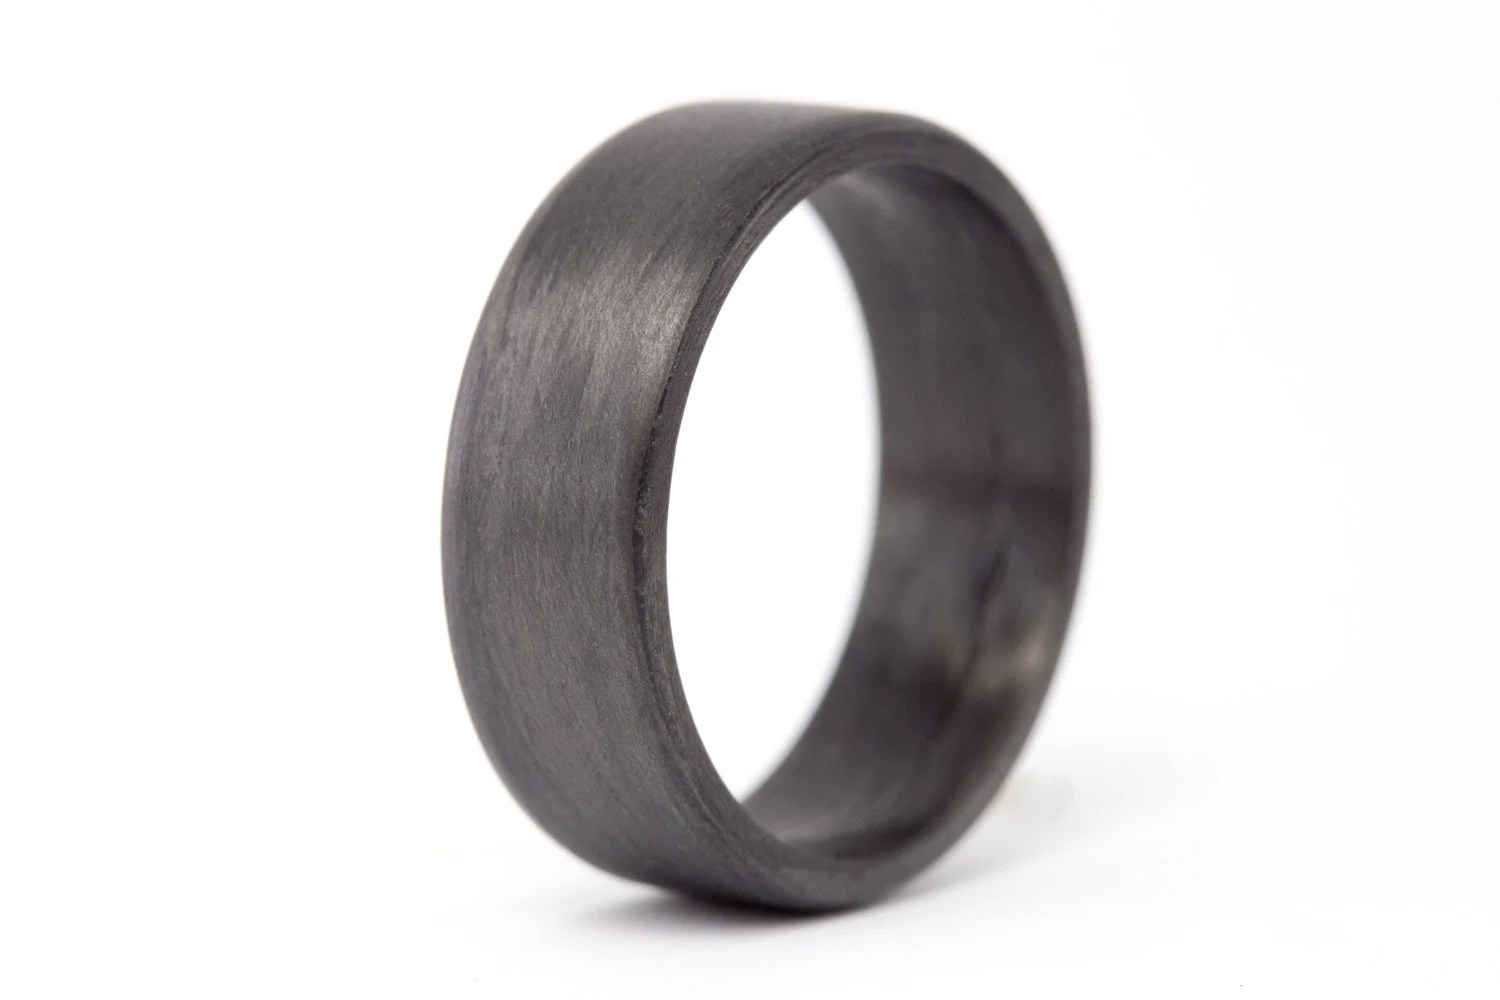 hypoallergenic rings mens batman wedding bands Men s carbon fiber flat ring Unique and instrial black wedding band Water resistant very durable and hypoallergenic 7N